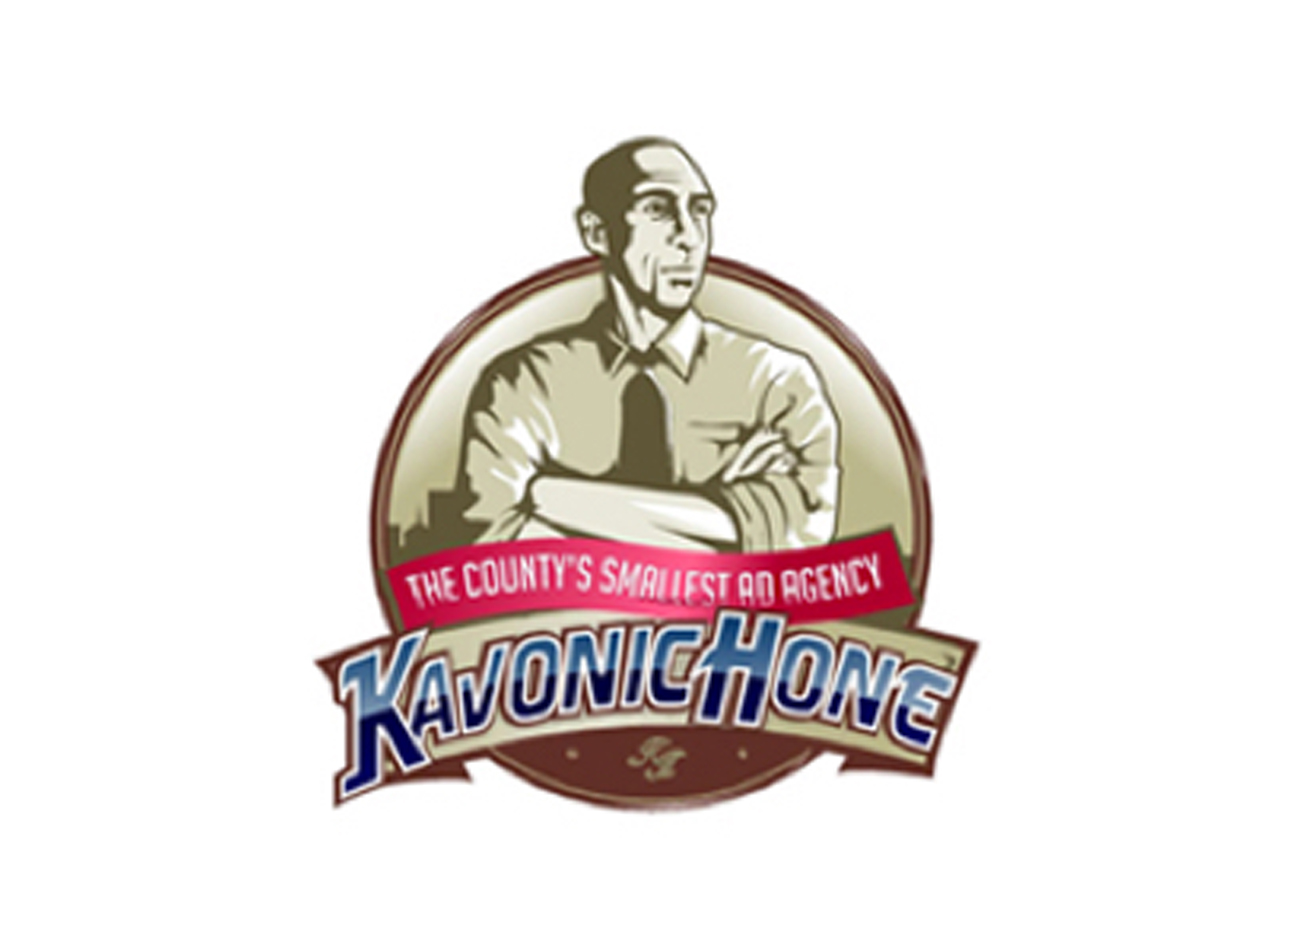 kavonic-hone-character-illustrative-logo-designers-agent-orange-graphic-agency-south-african-branding-company.jpg